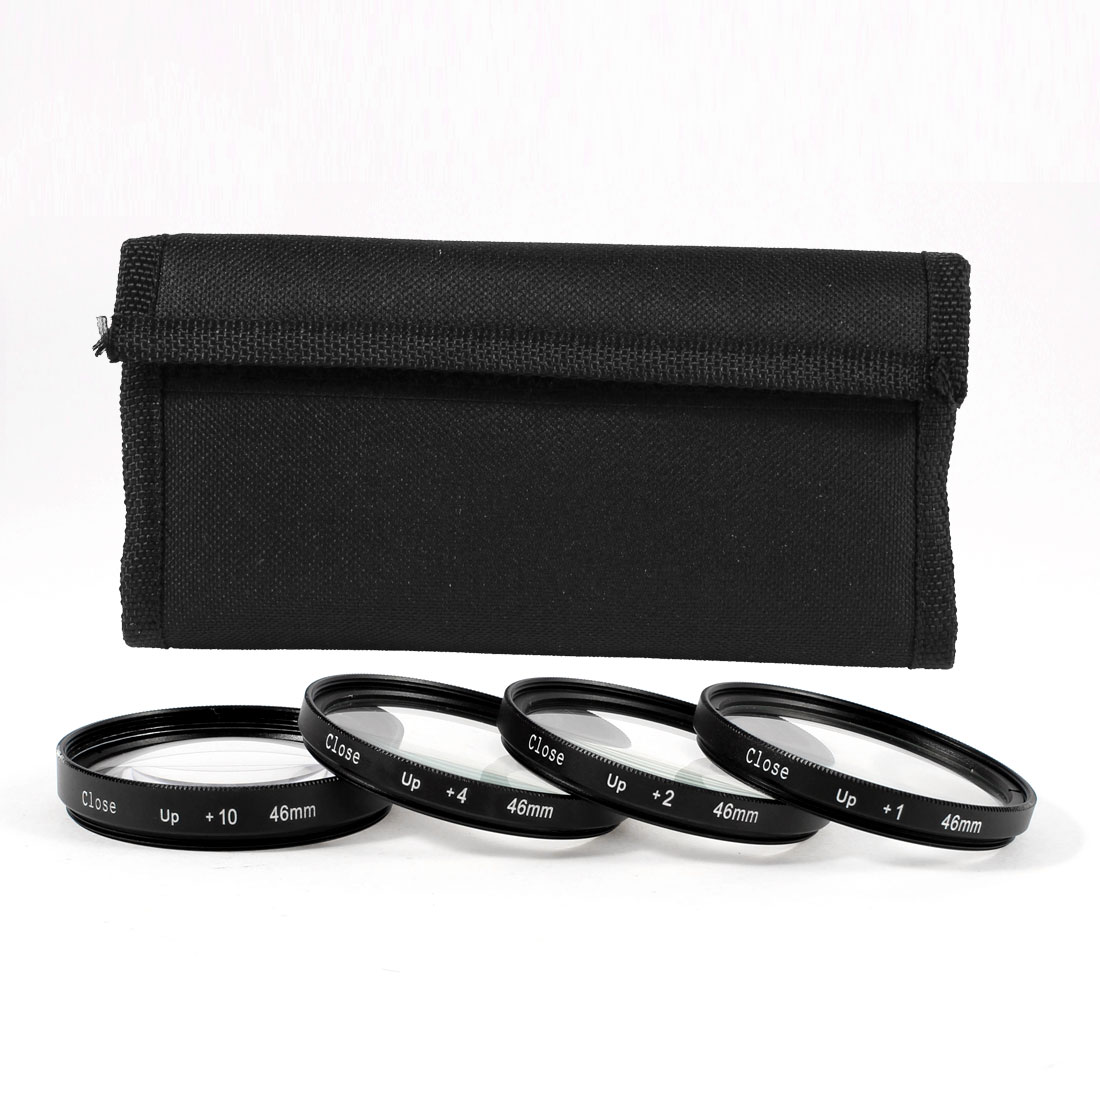 46mm Macro Close Up Lens +1 +2 +4 +10 Filter Kit for DSLR SLR Camera